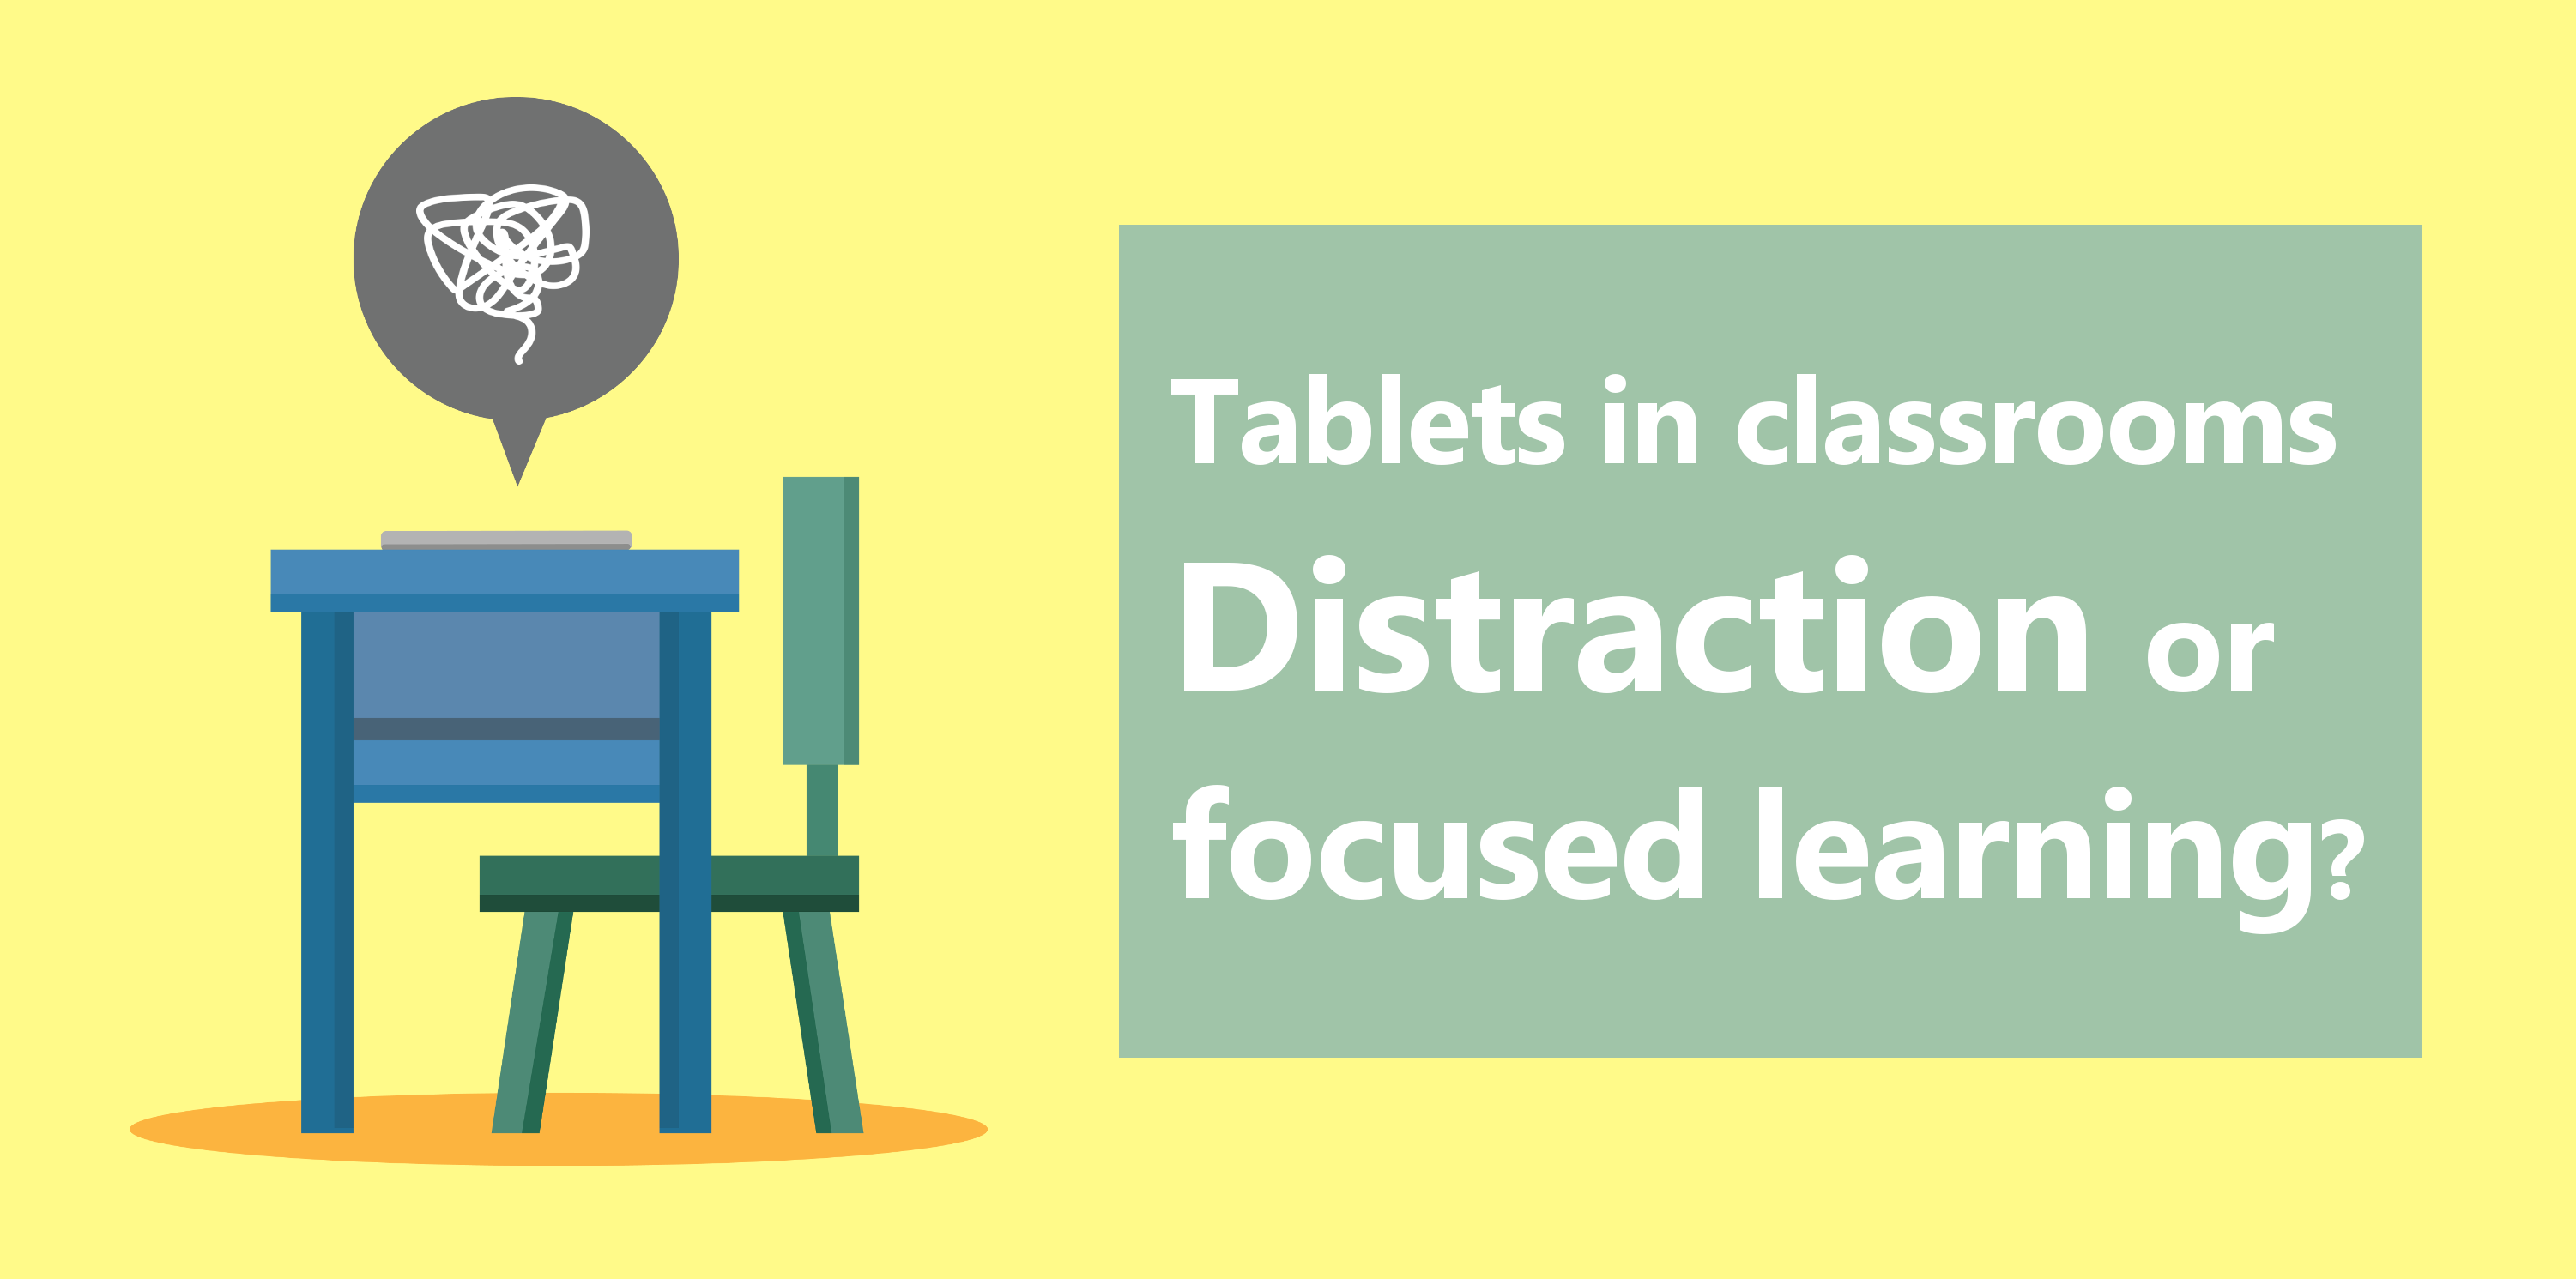 Tablets in classrooms - Distraction or focused learning